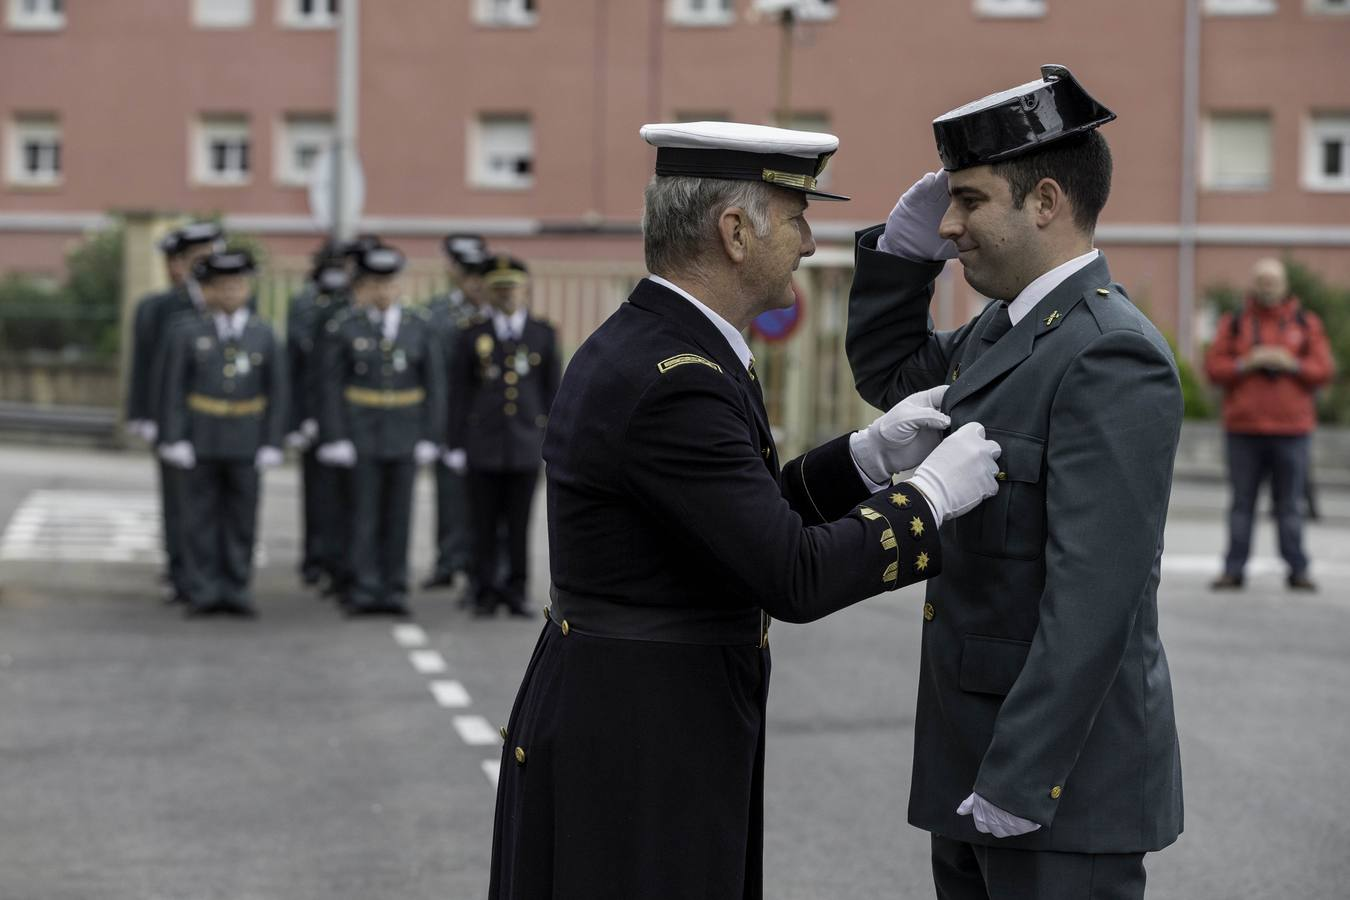 La Guardia Civil celebra su Patrona